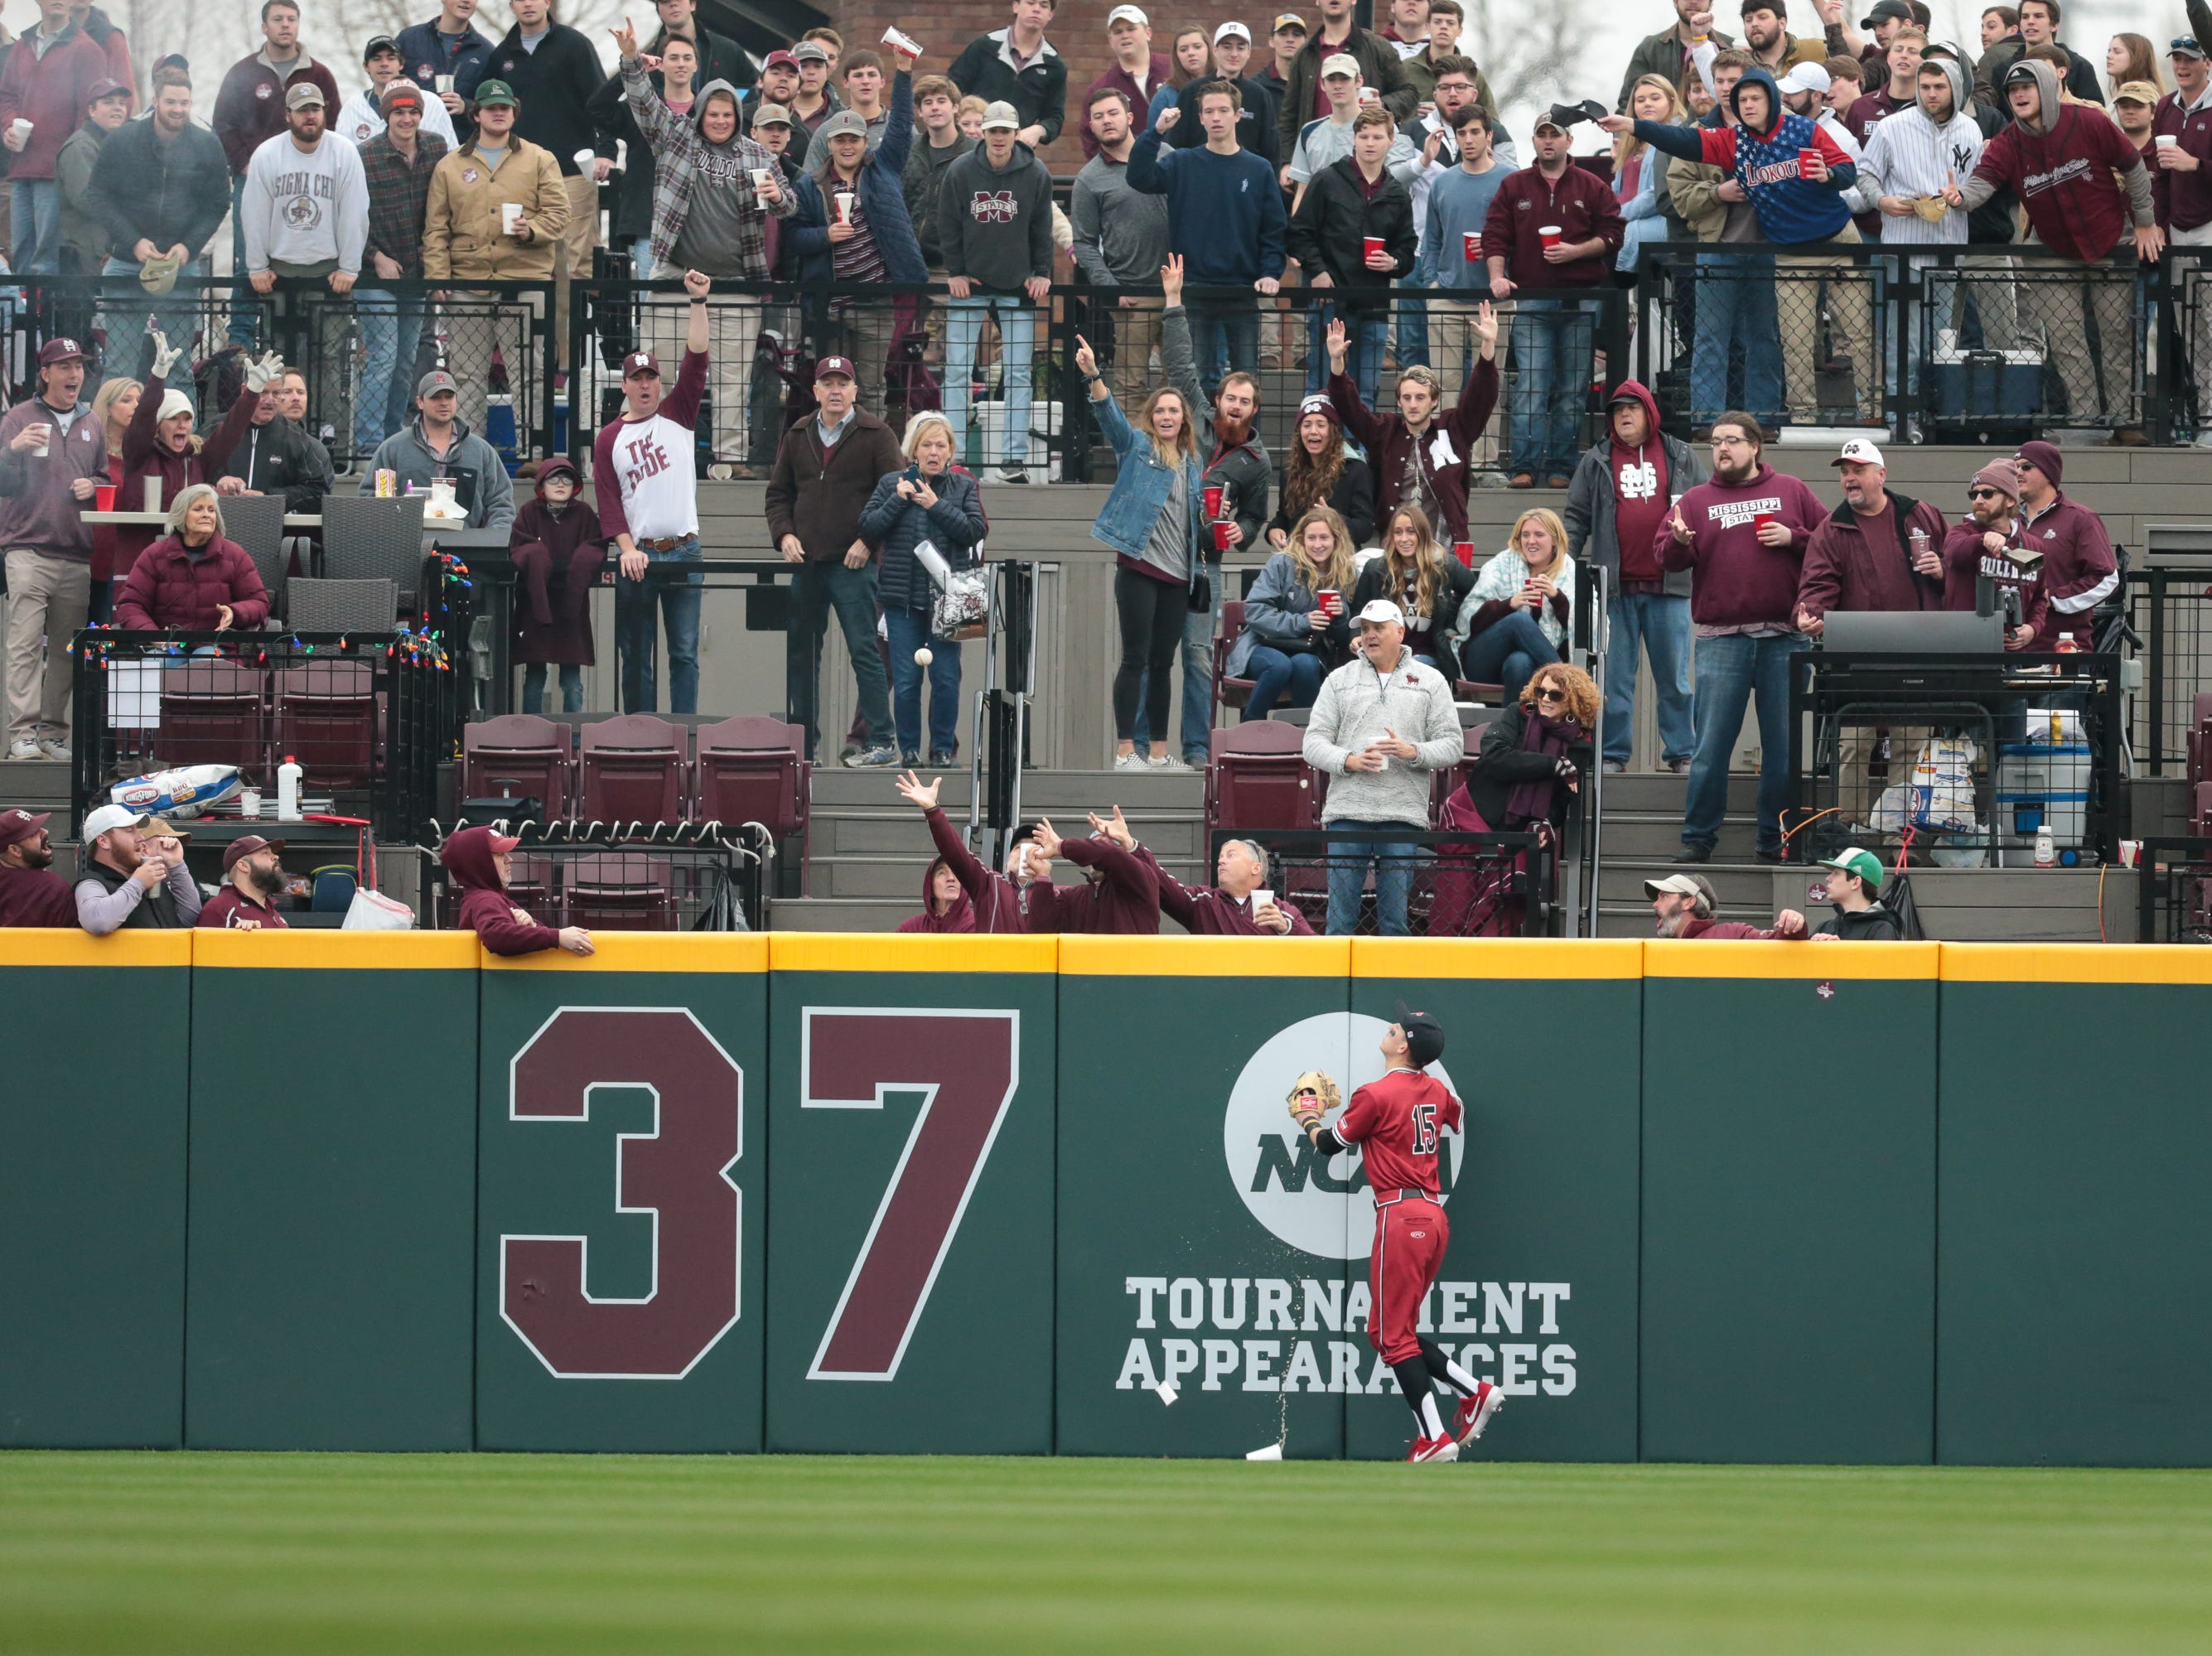 MSU fans try to catch a home run ball as Youngstown State's Web Charles (15) looks on. Mississippi State played Youngstown State on Saturday, February 16, 2019. Photo by Keith Warren